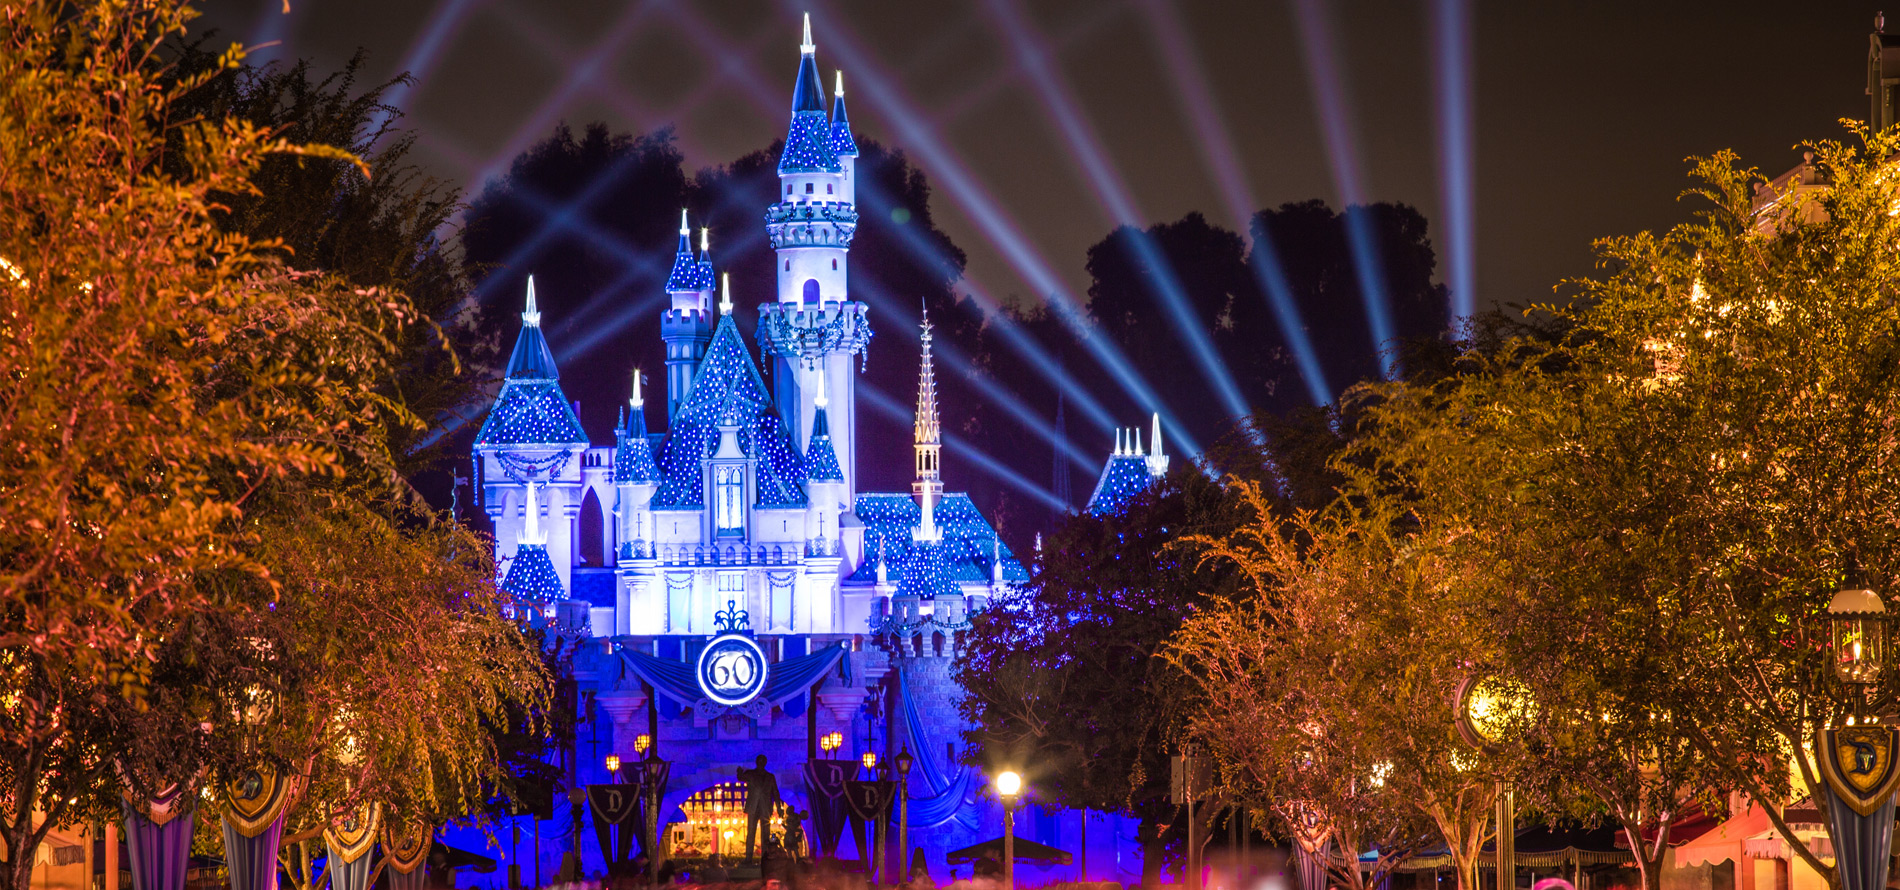 Finding Magic at Disney Again: What Would Walt Do?